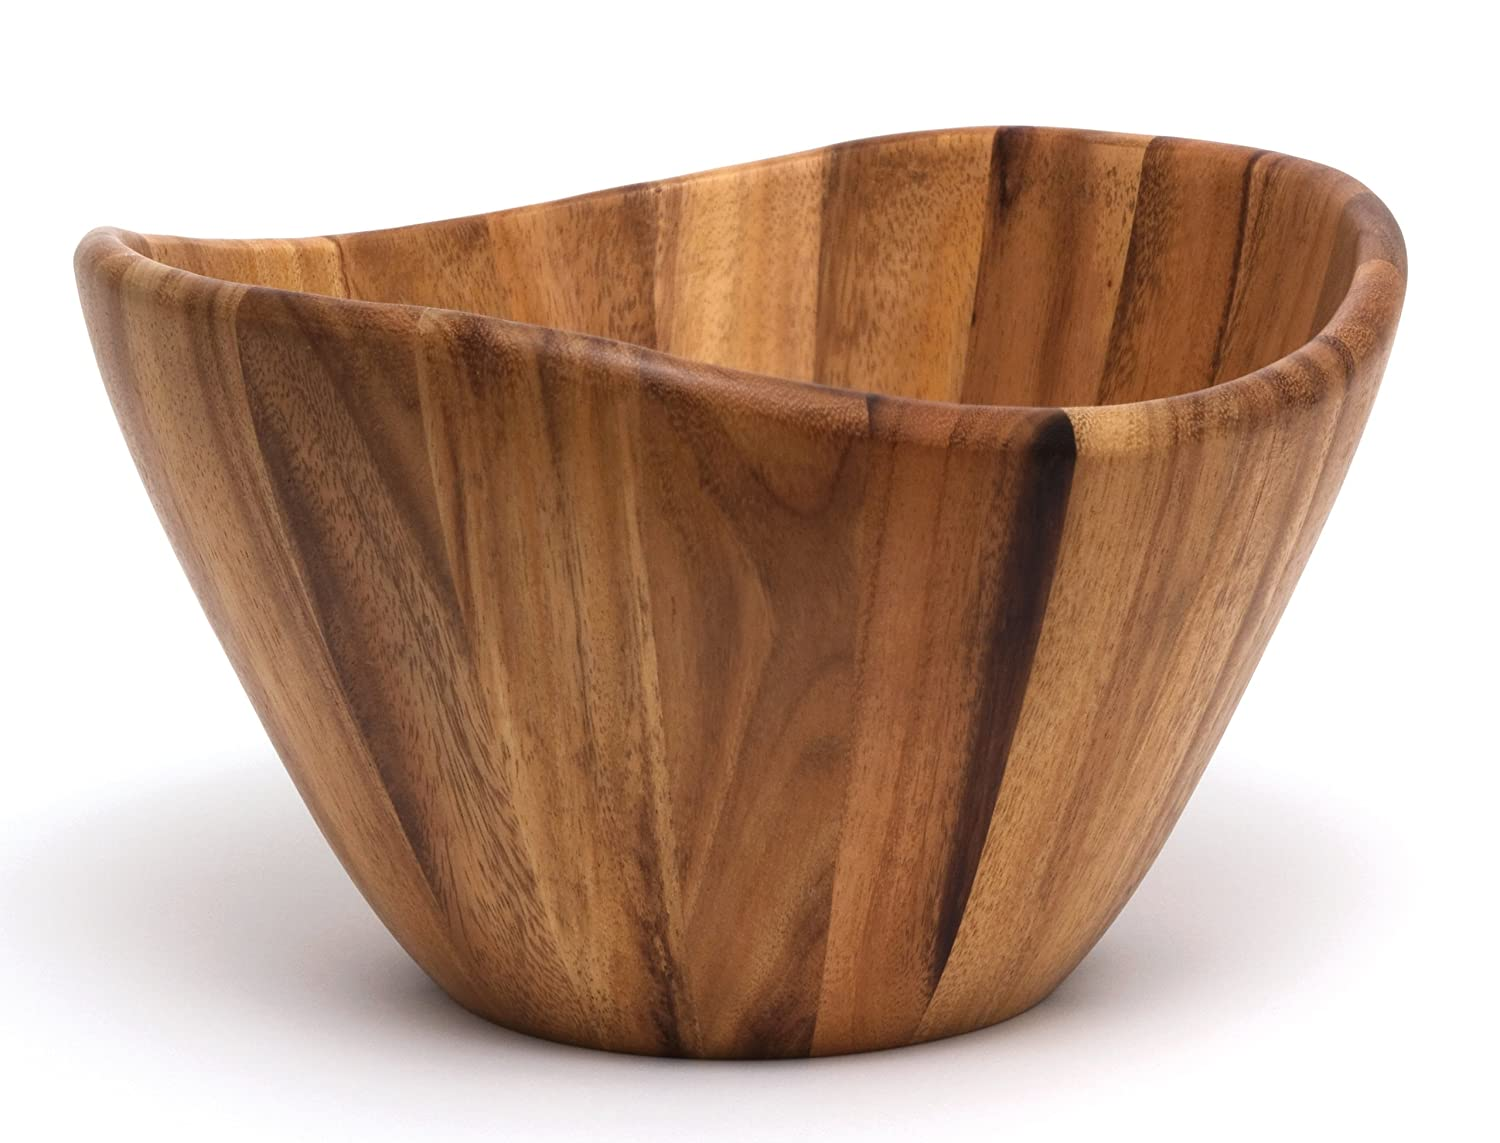 Lipper International 1174 Large Wavy Bowl, Acacia